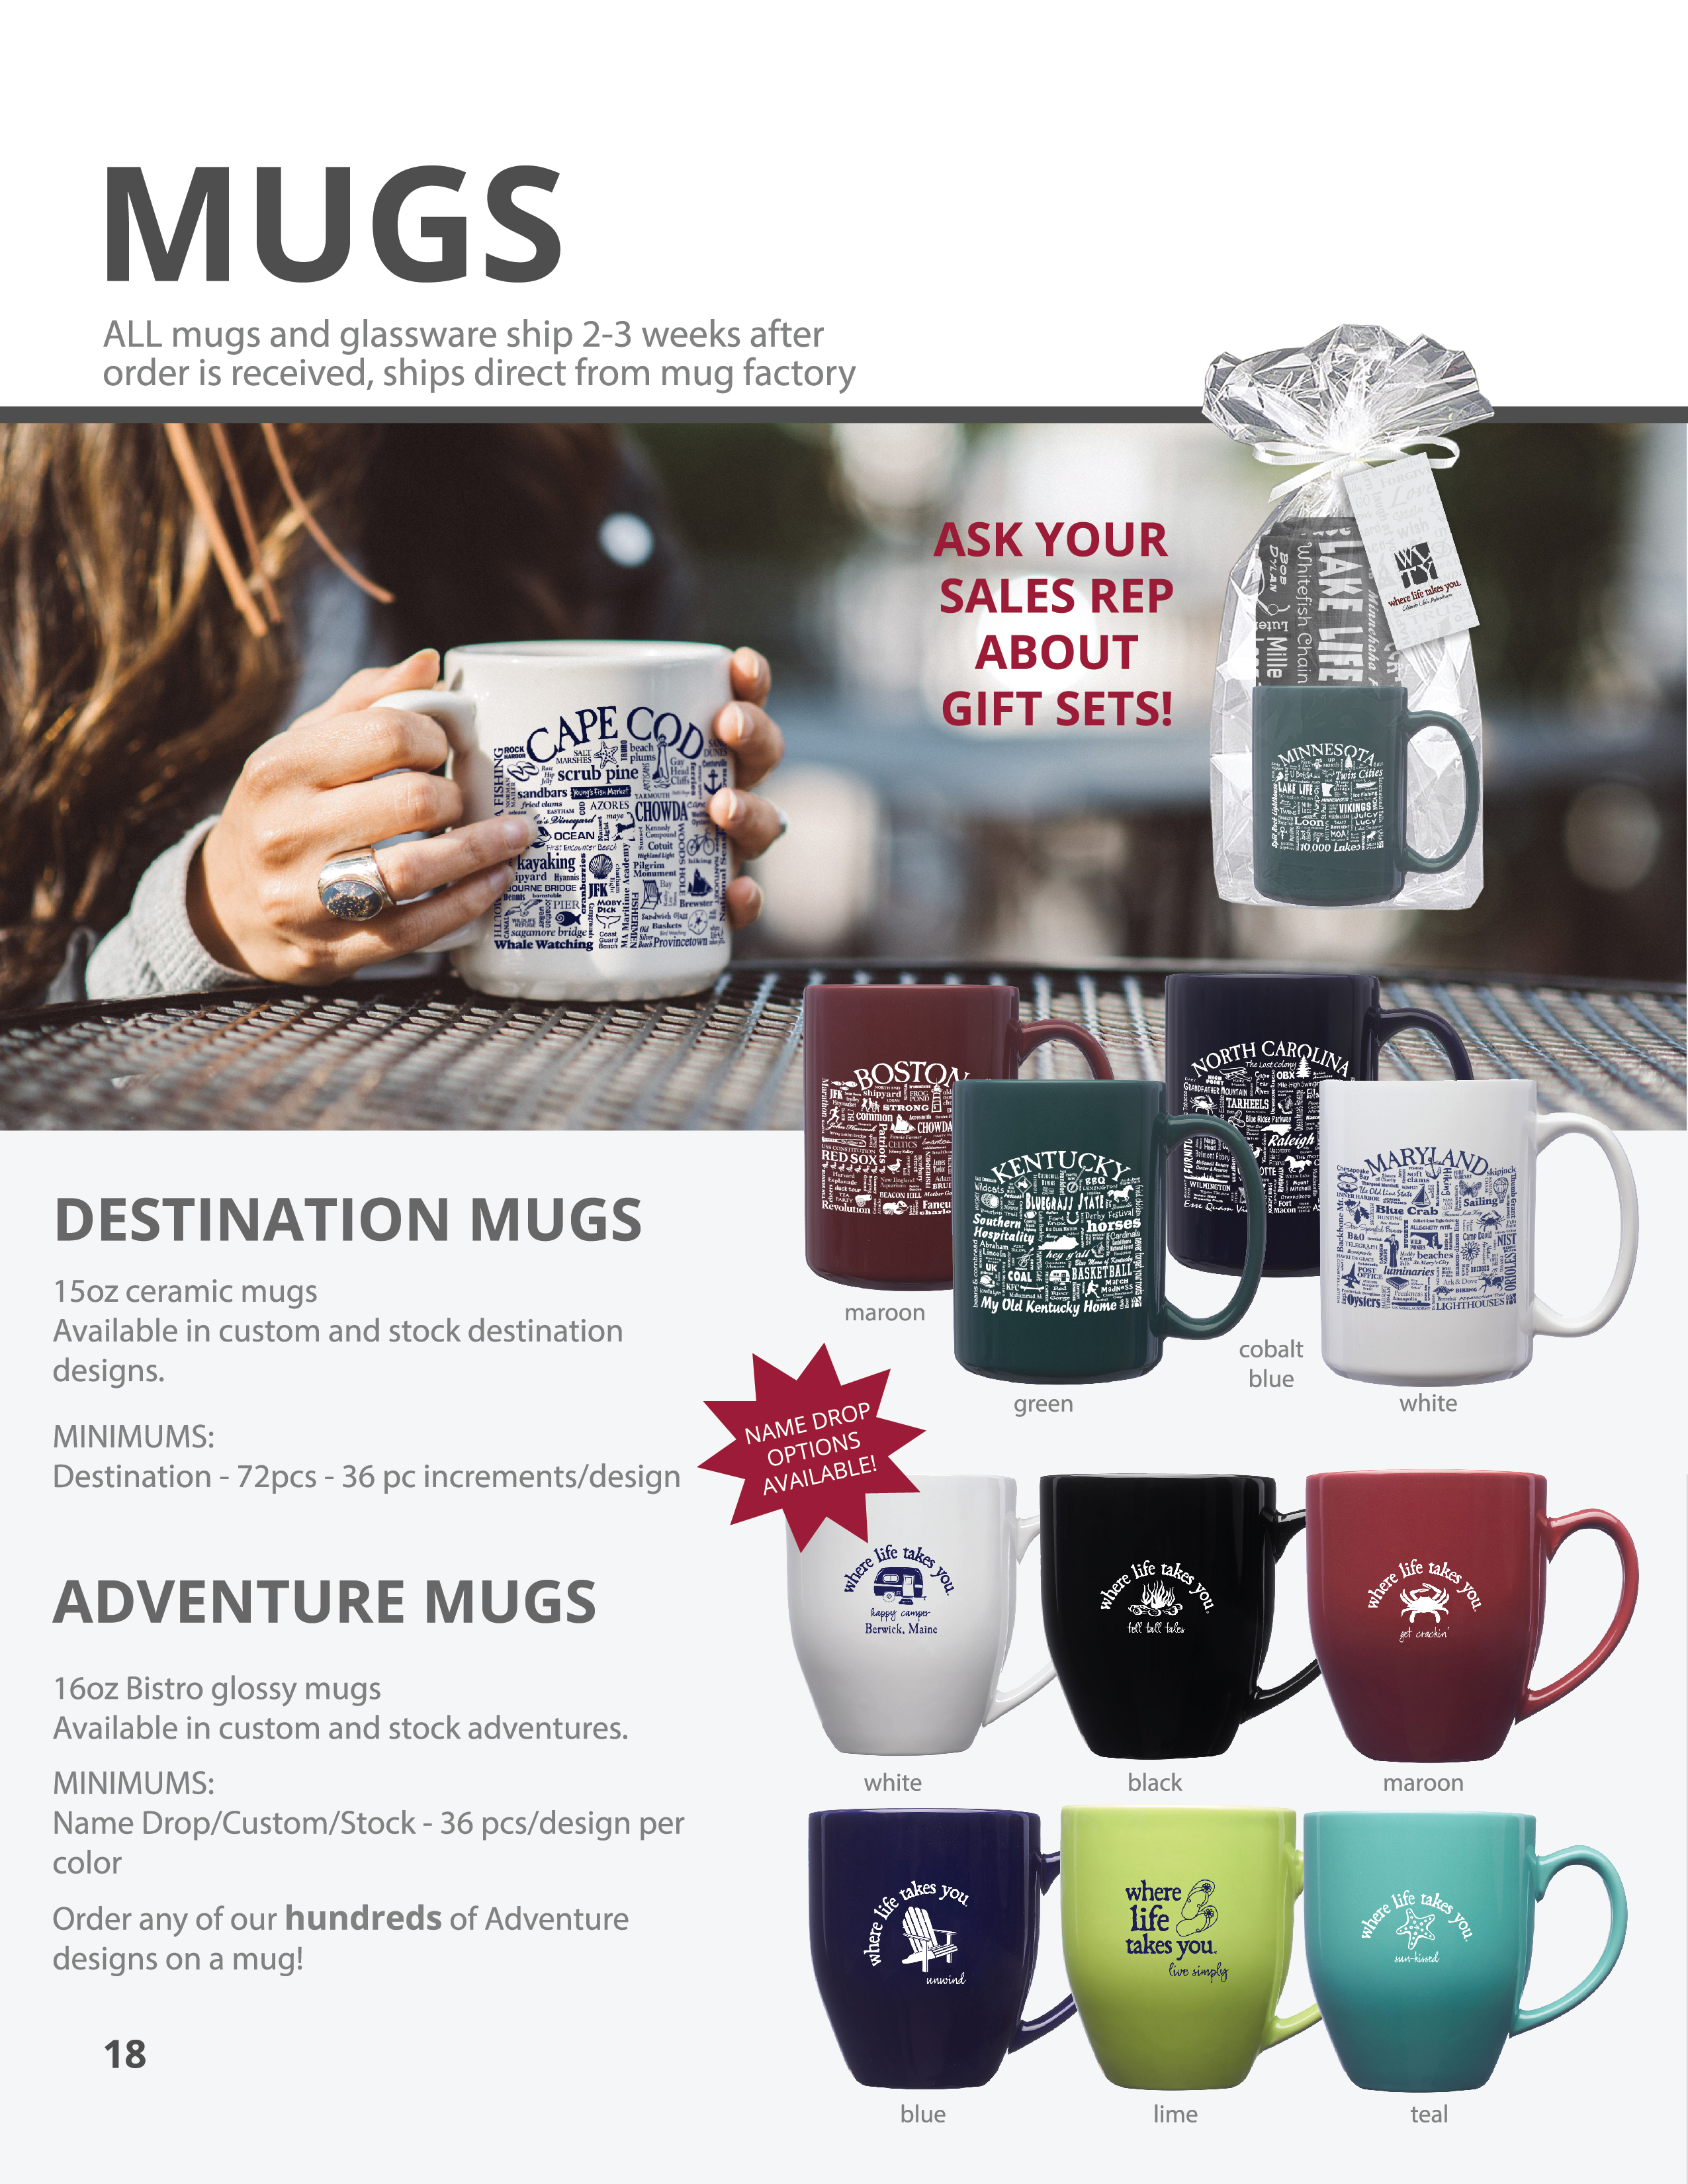 18-mugs-glassware-decals-01.jpg